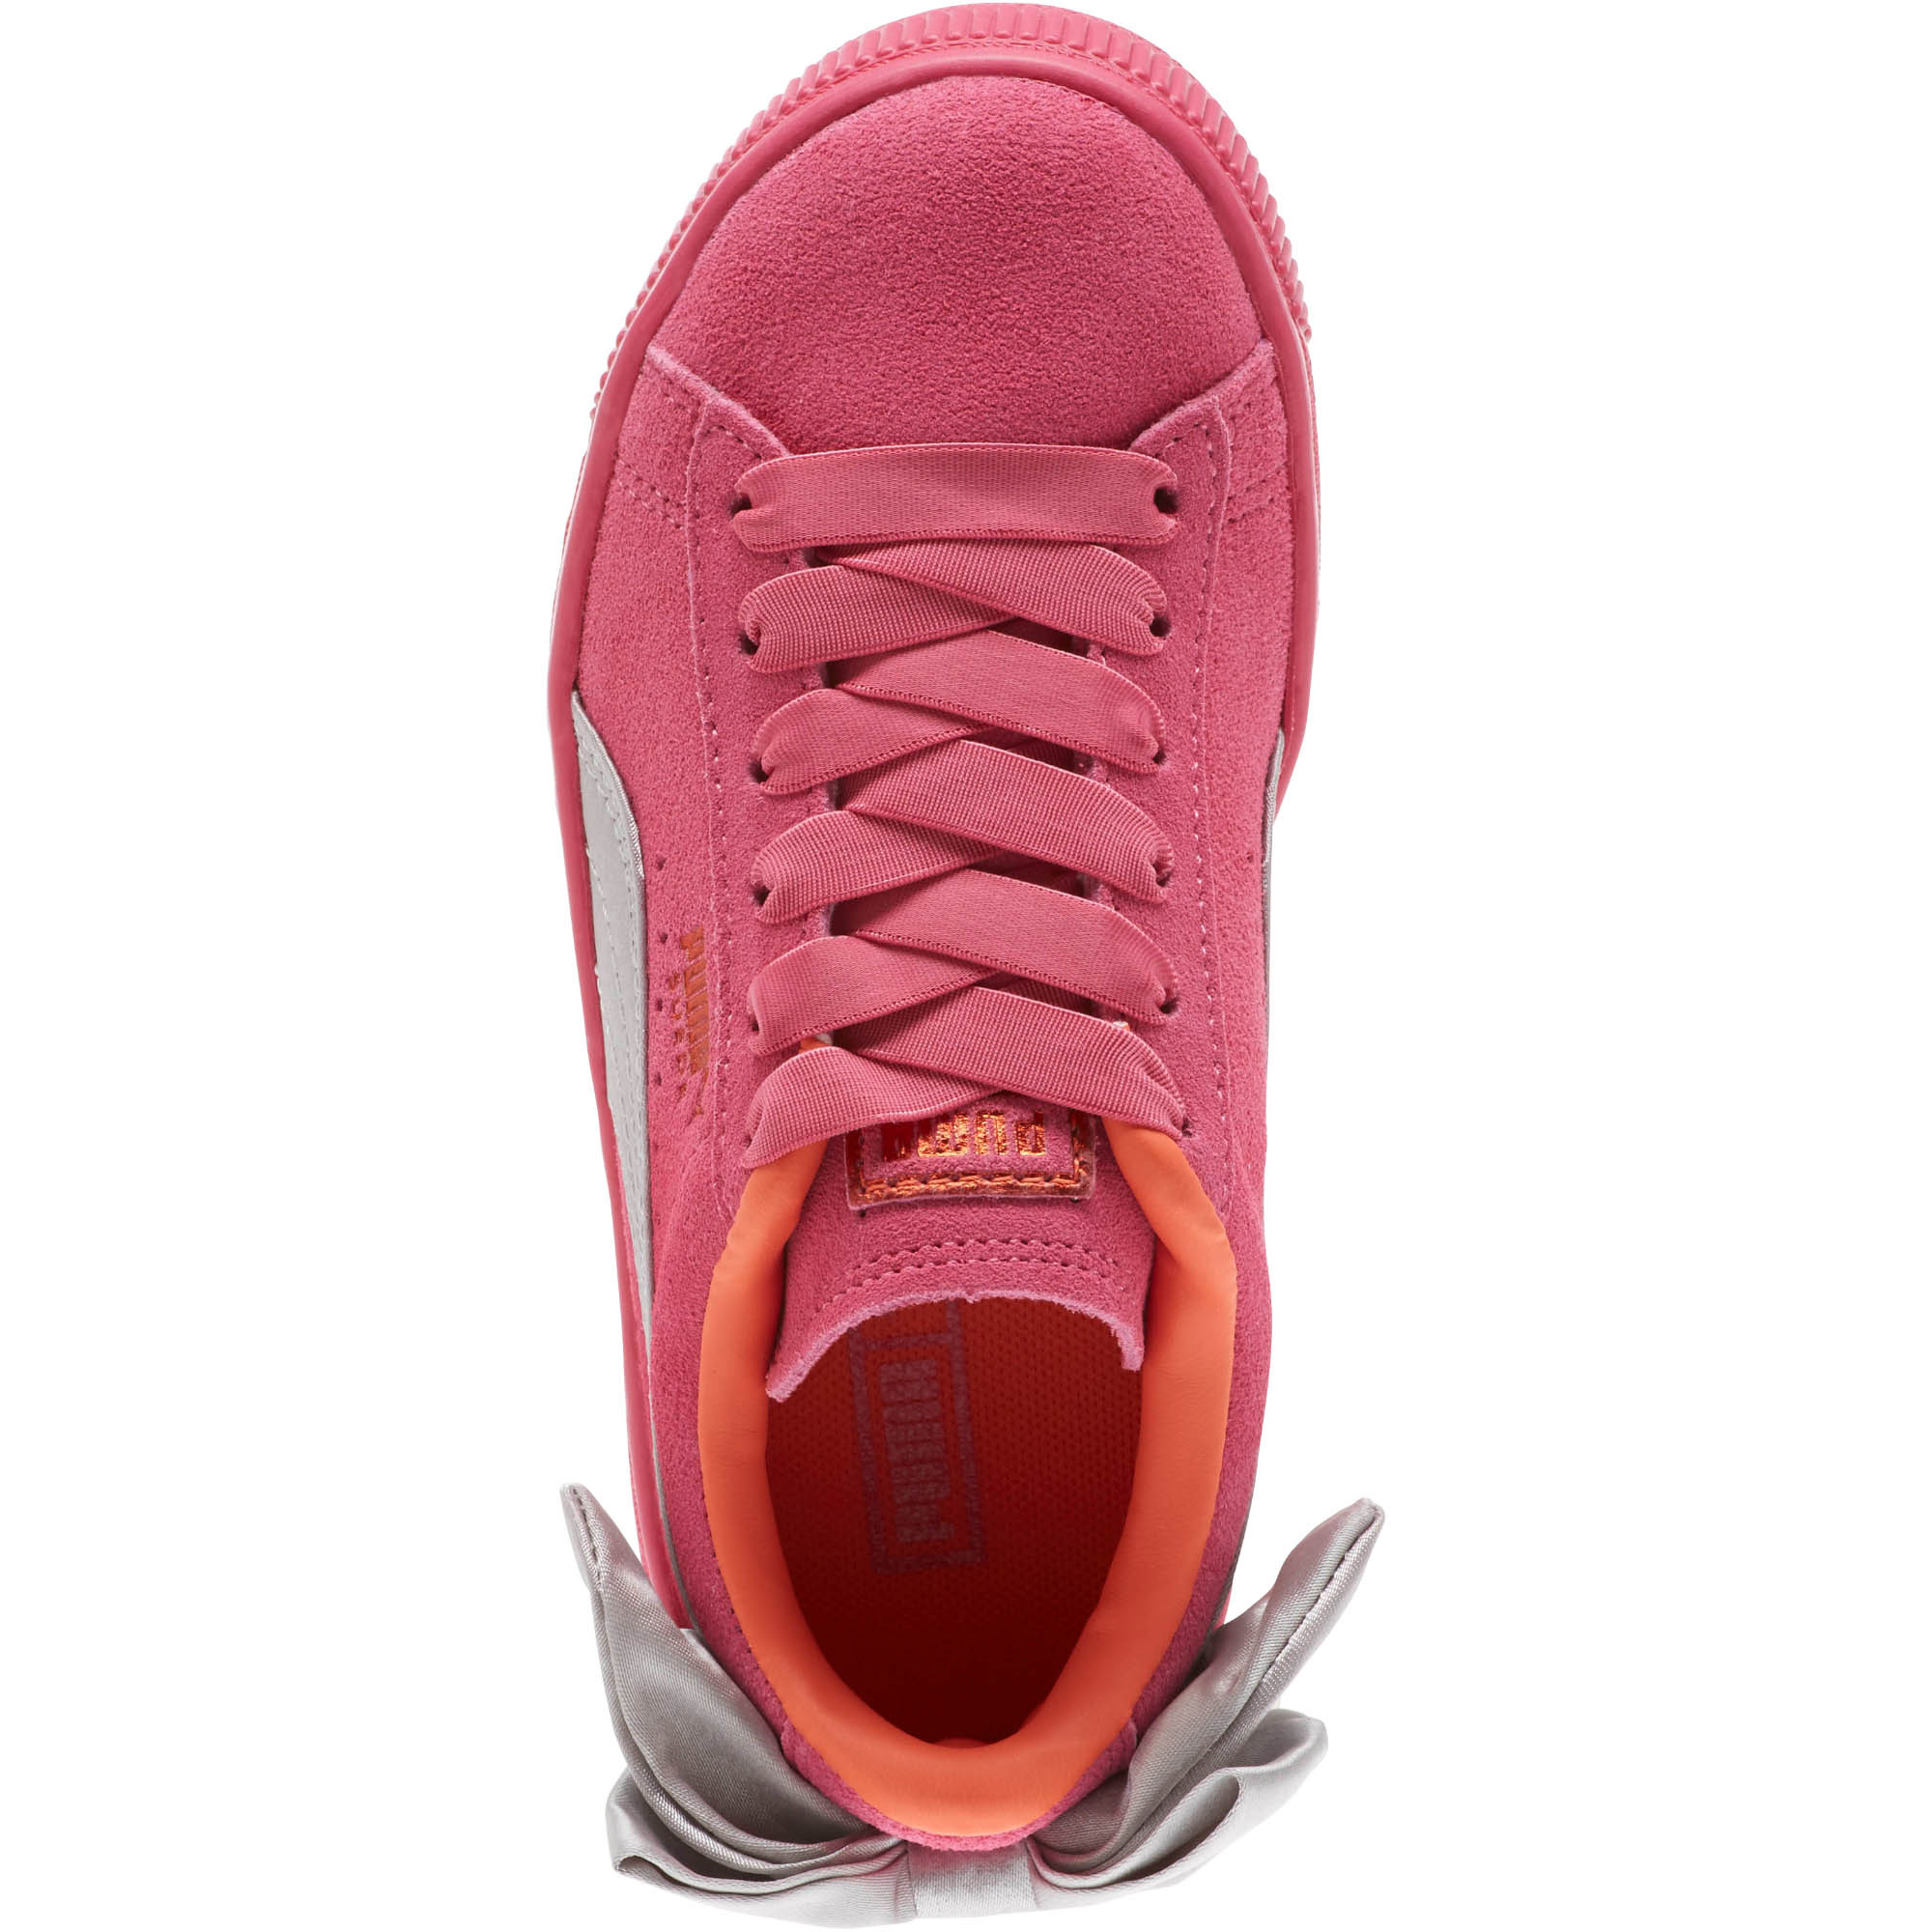 PUMA-Suede-Bow-AC-Little-Kids-039-Shoes-Girls-Shoe-Kids thumbnail 6